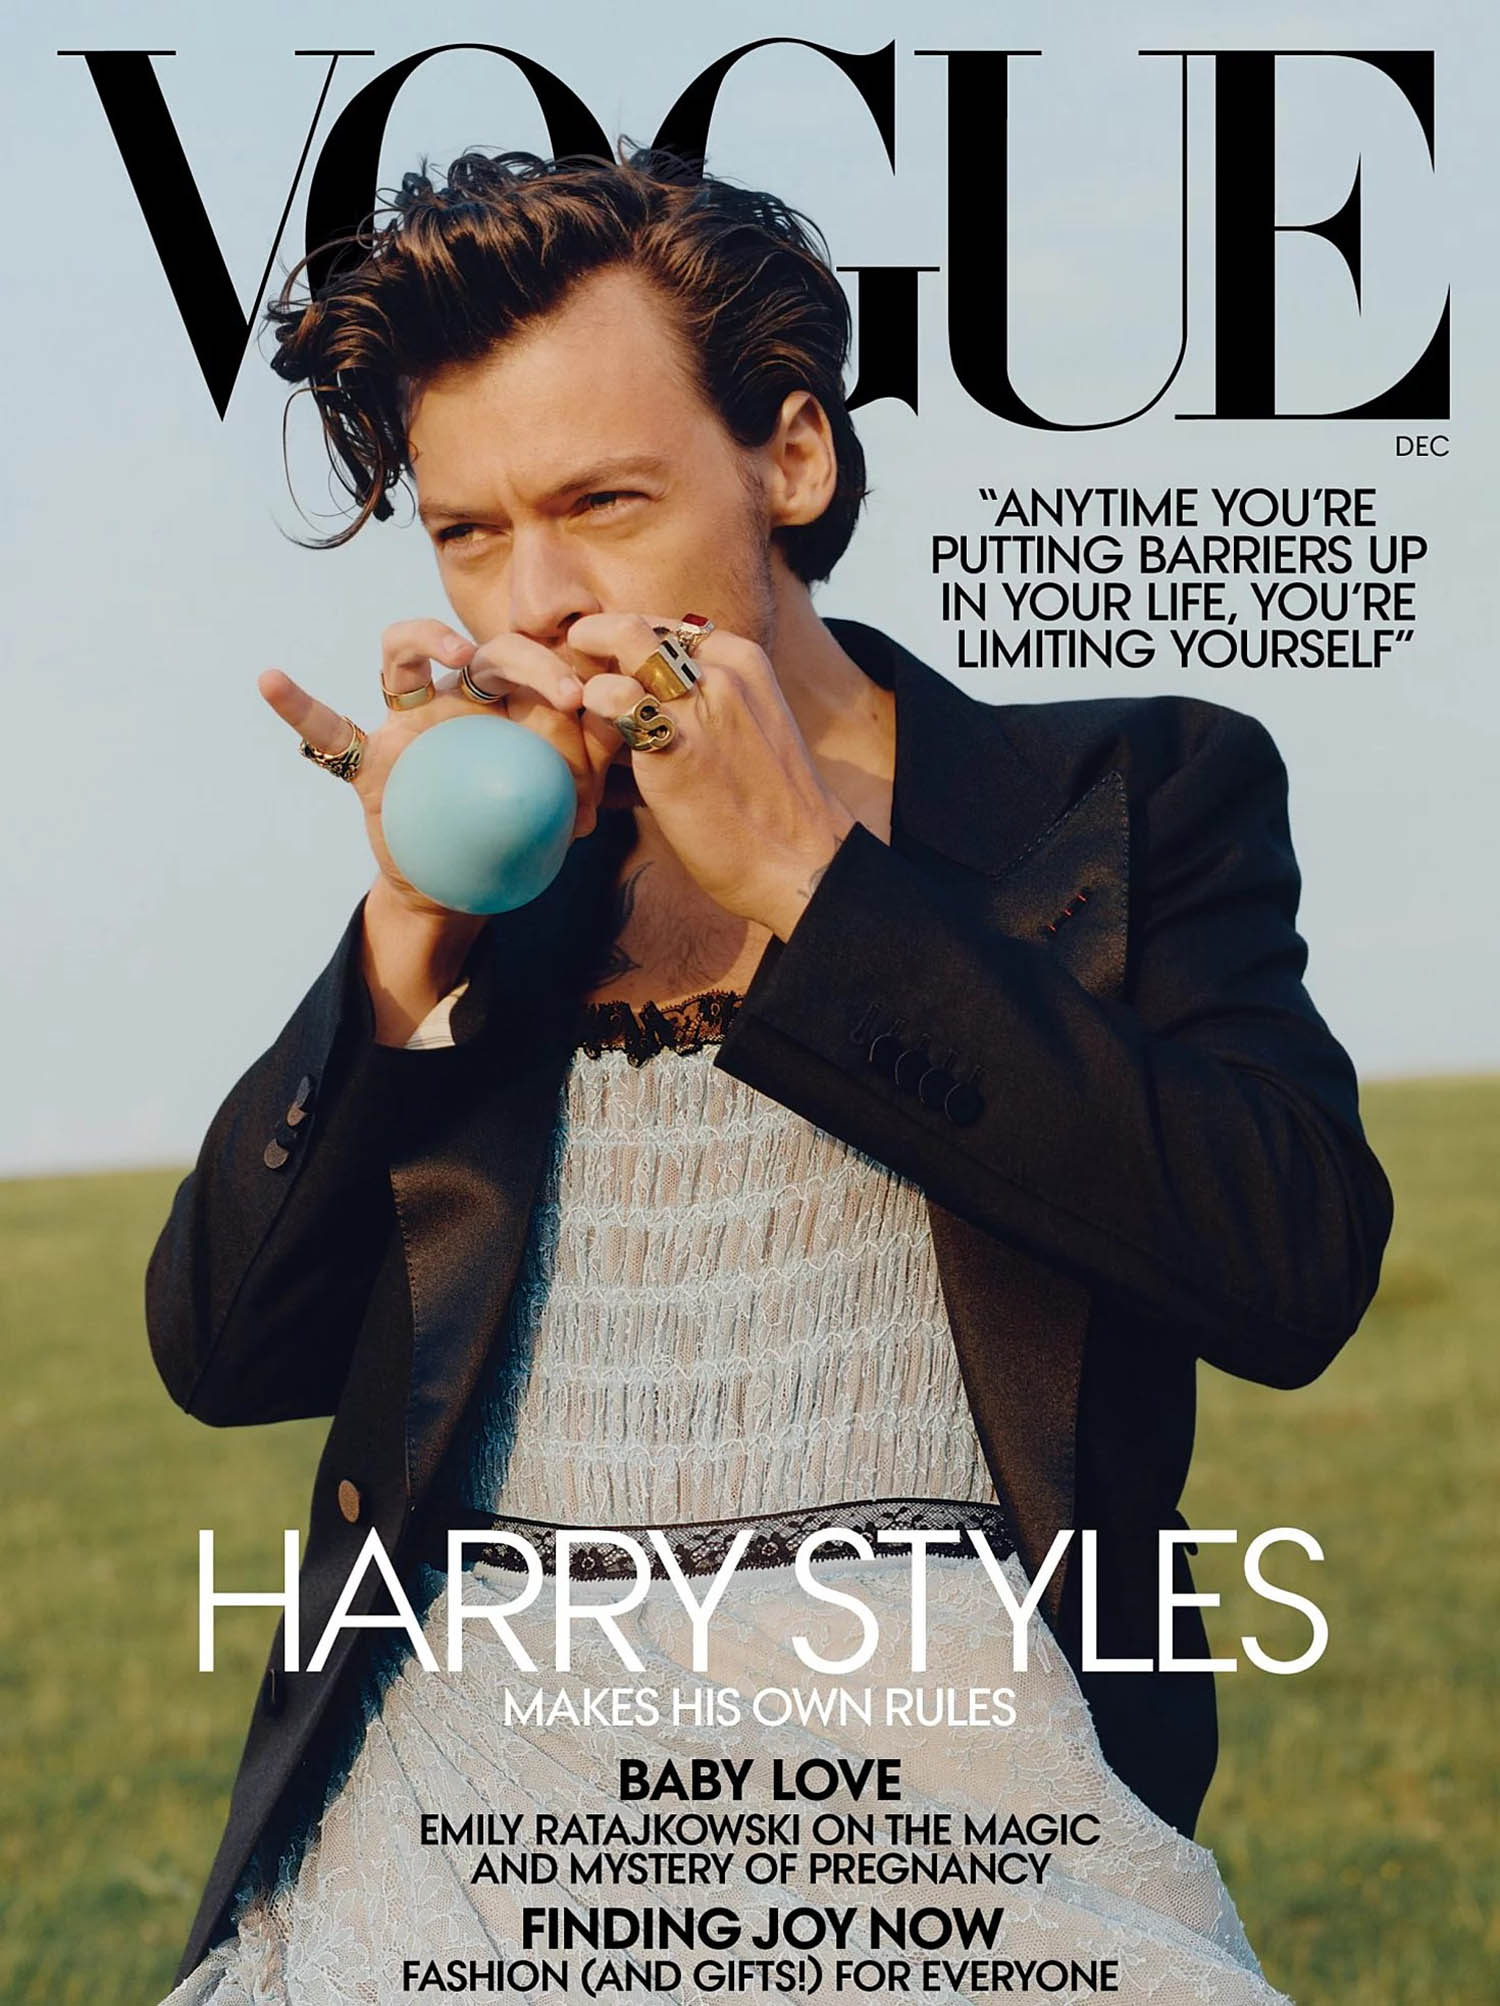 Harry Styles covers Vogue US December 2020 by Tyler Mitchell